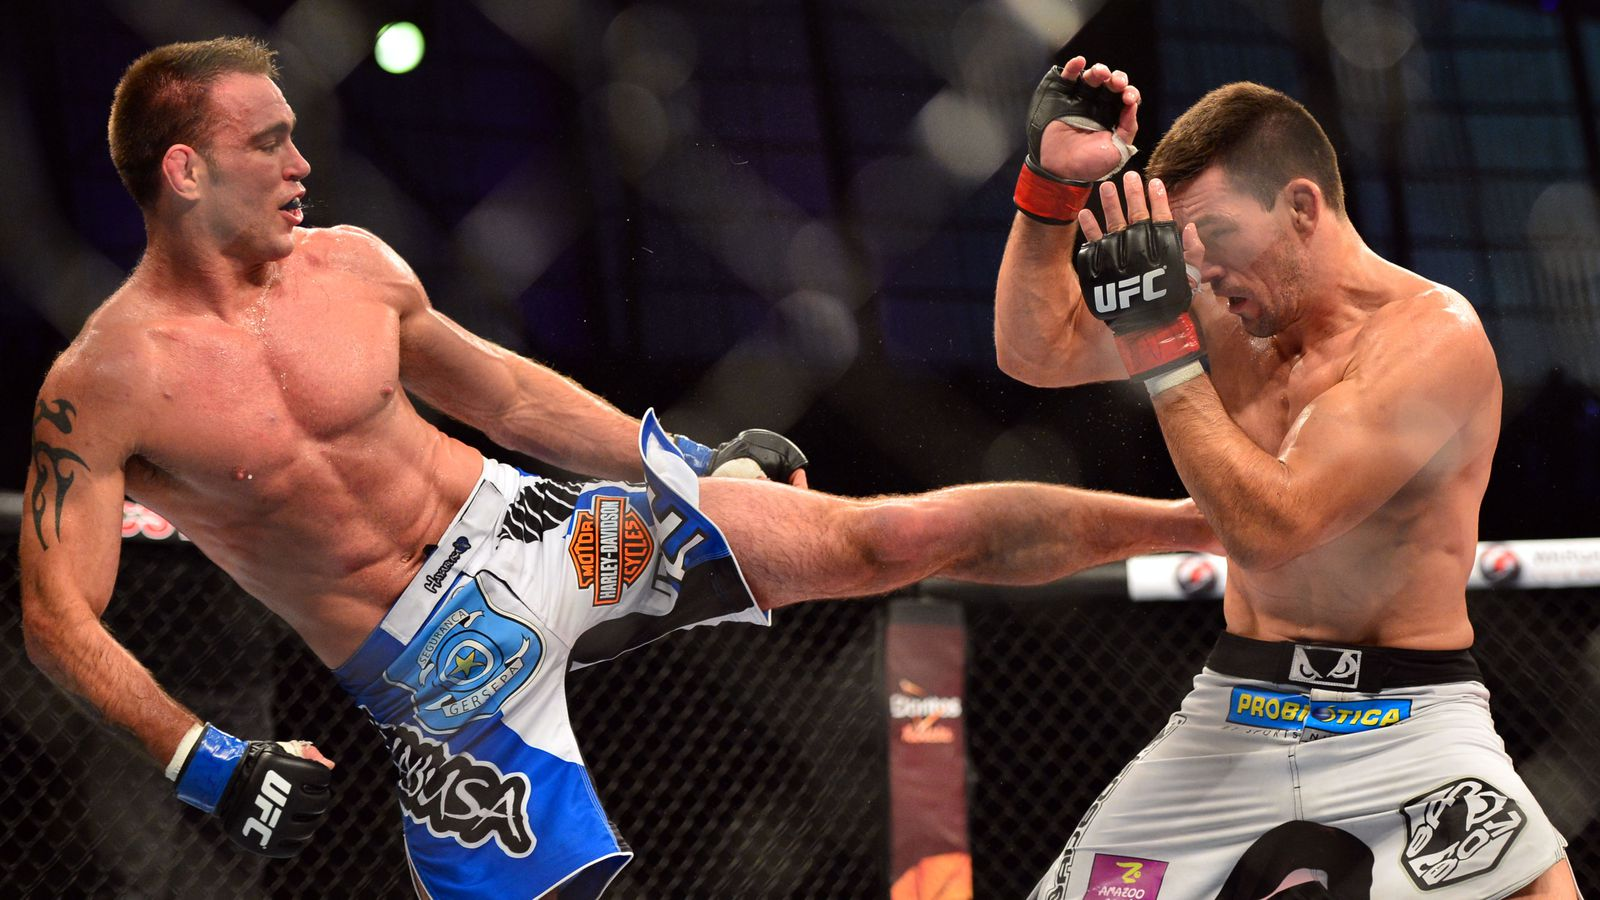 Jake Shields vs. Demian Maia full fight video highlights